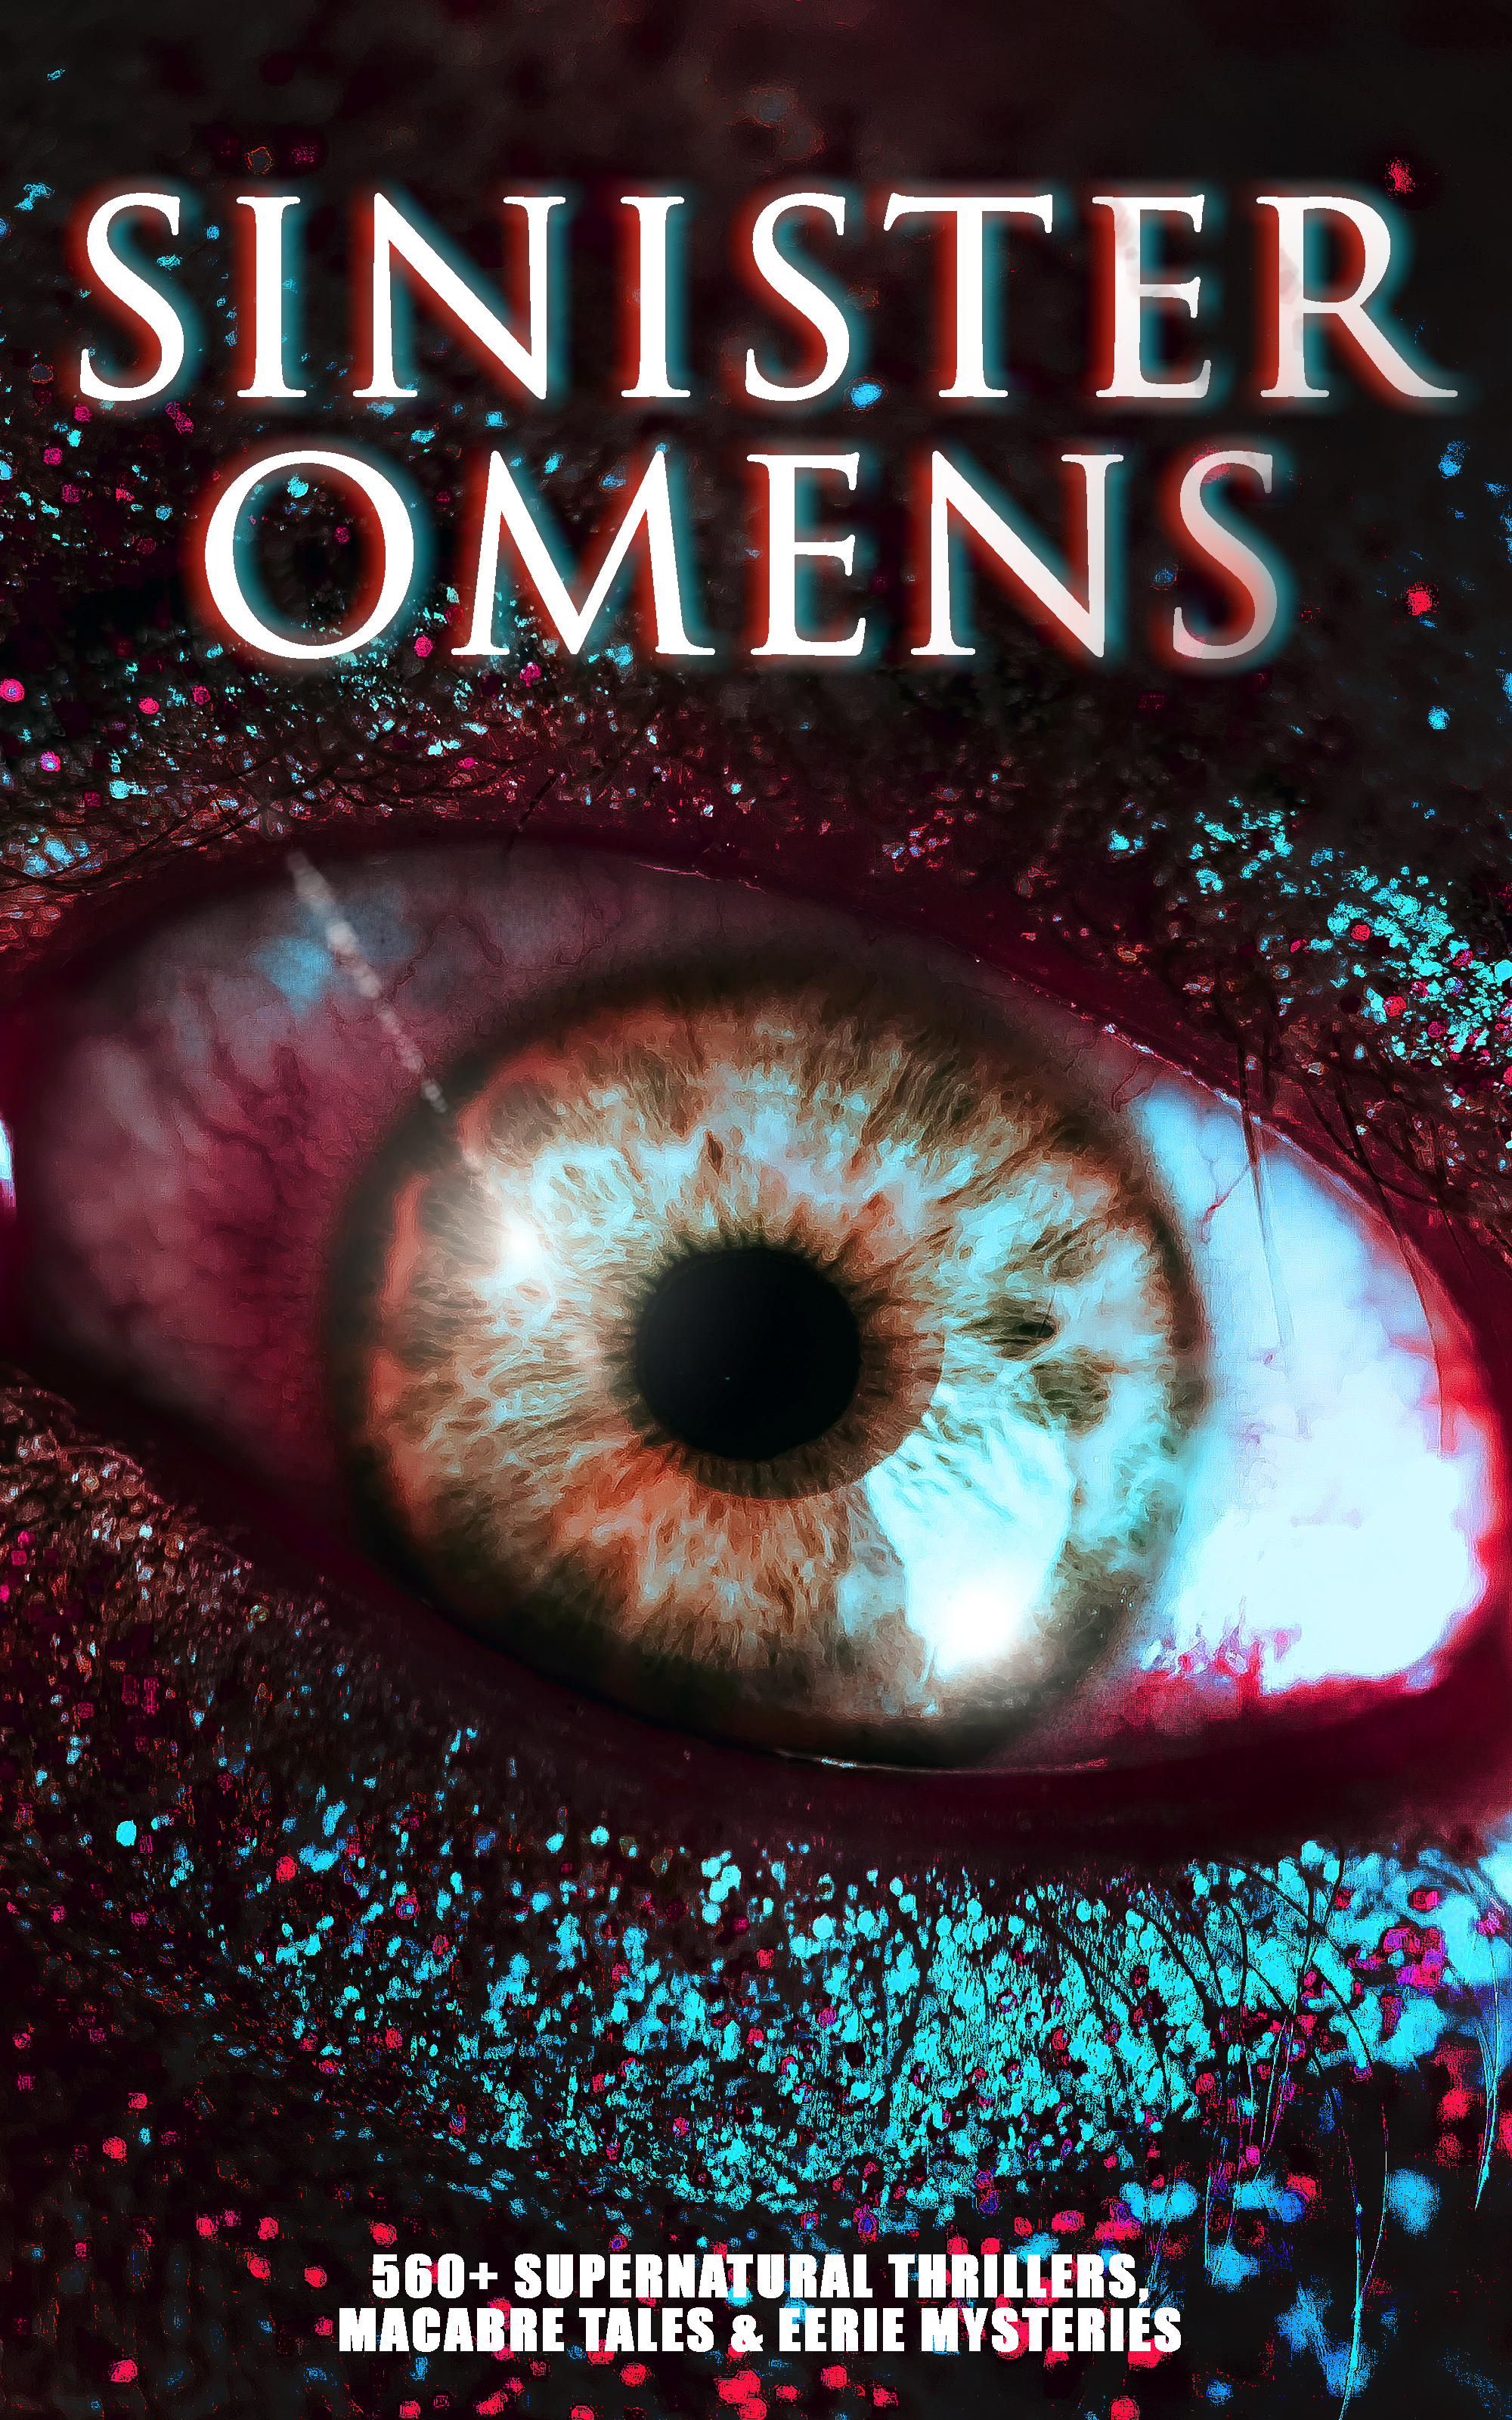 sinister omens 560 supernatural thrillers macabre tales eerie mysteries